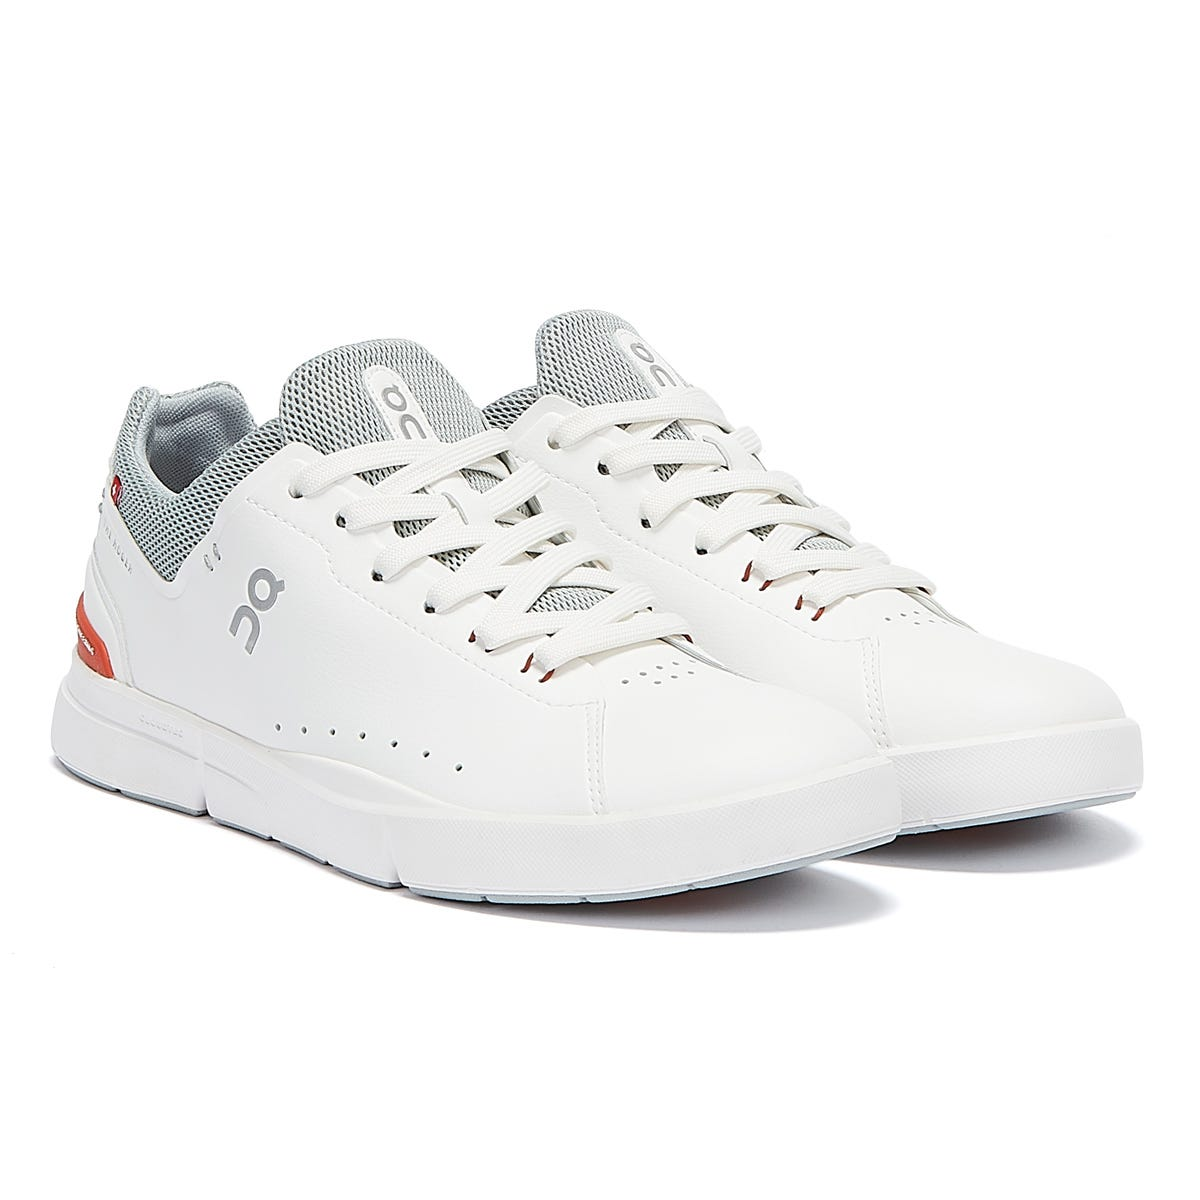 Trainers & Running Shoes On Running The Roger Advantage Mens White / Flare Trainers